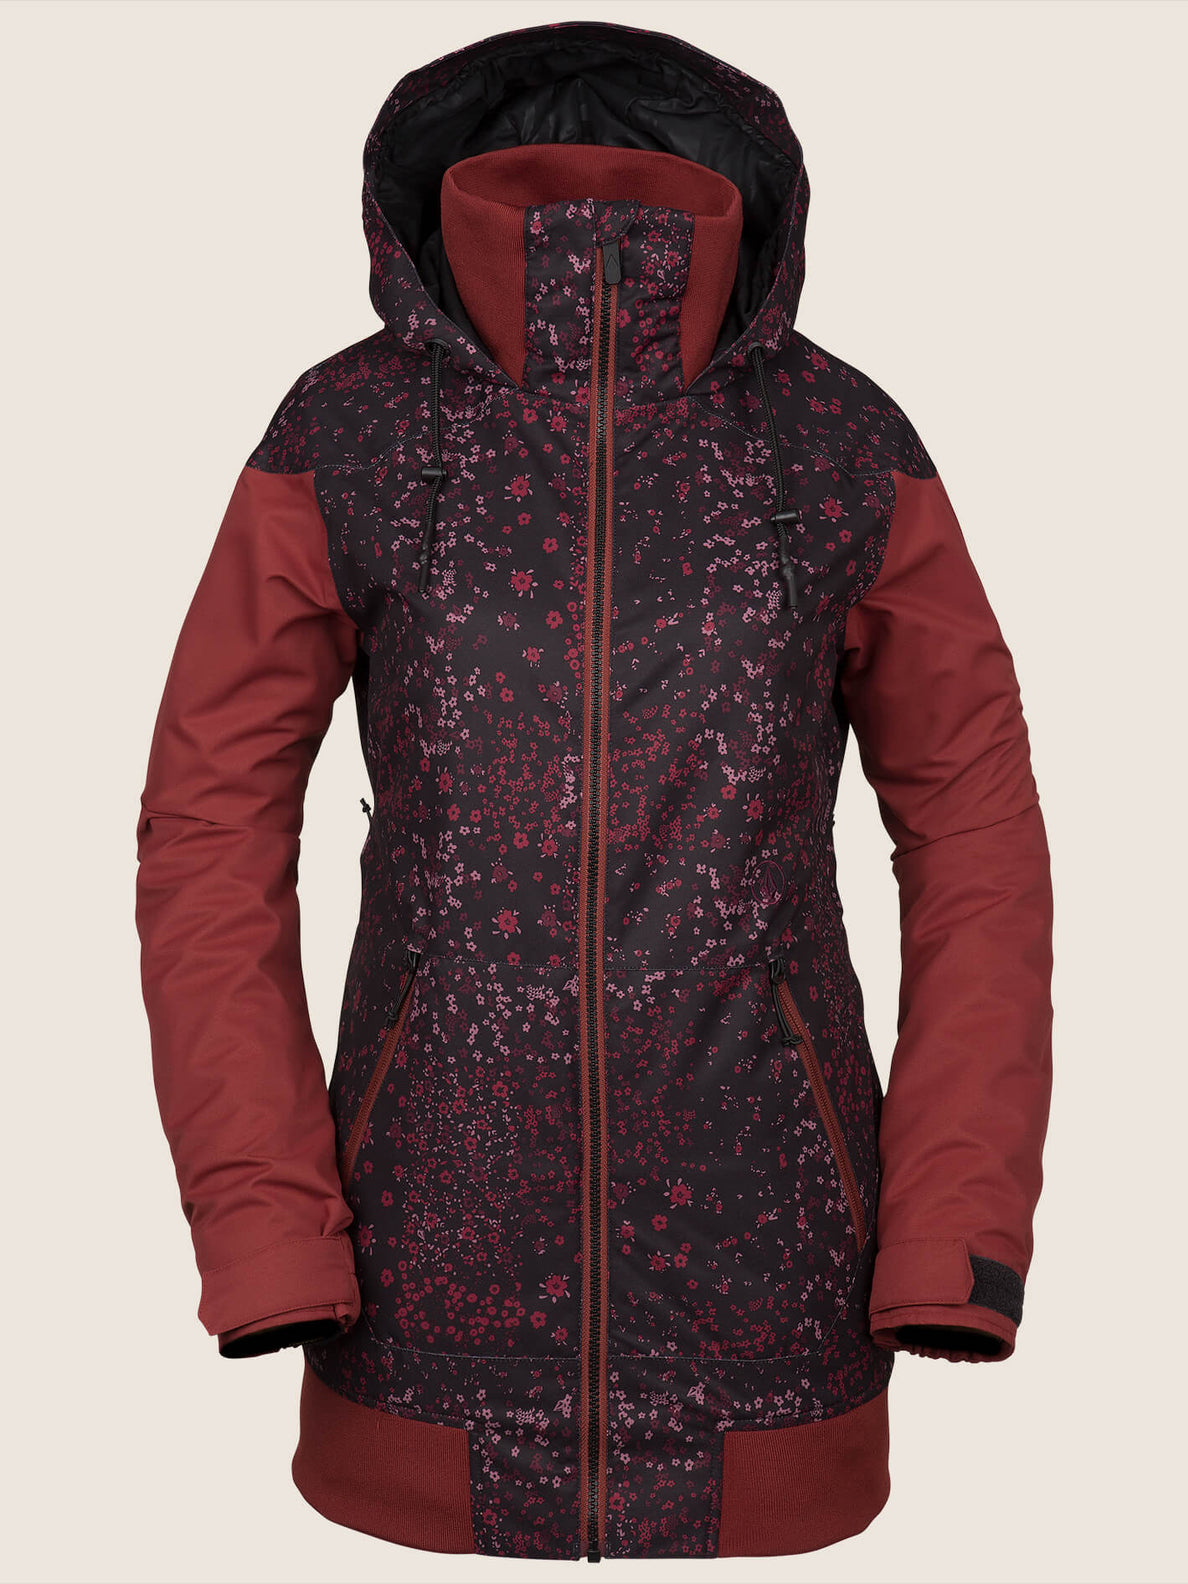 Meadow Insulated Jacket In Black Floral Print, Front View